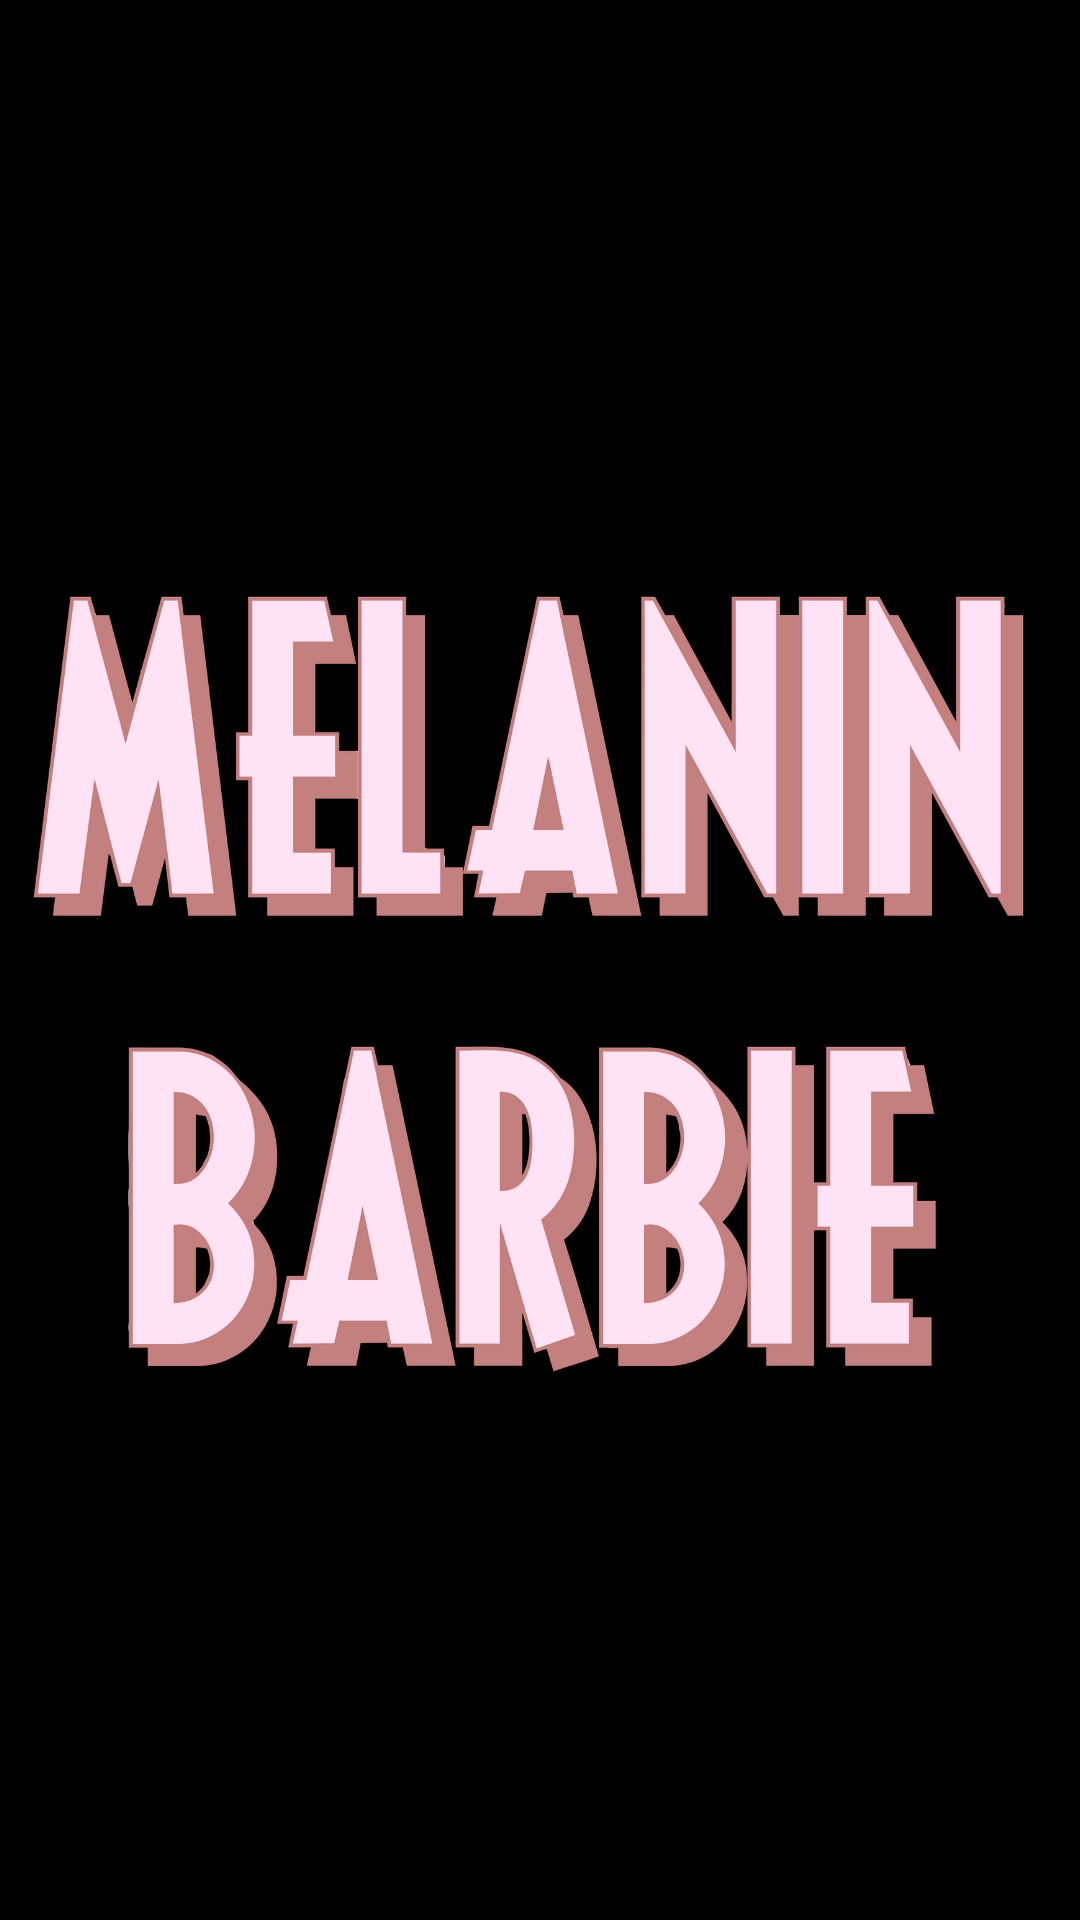 Pastel Melanin Barbie Sticker Pink Aesthetic Blm Sticker Black Pride Black Girl Magic Sticker Black Aesthetic Wallpaper Black Girl Magic Art Pastel Pink Aesthetic